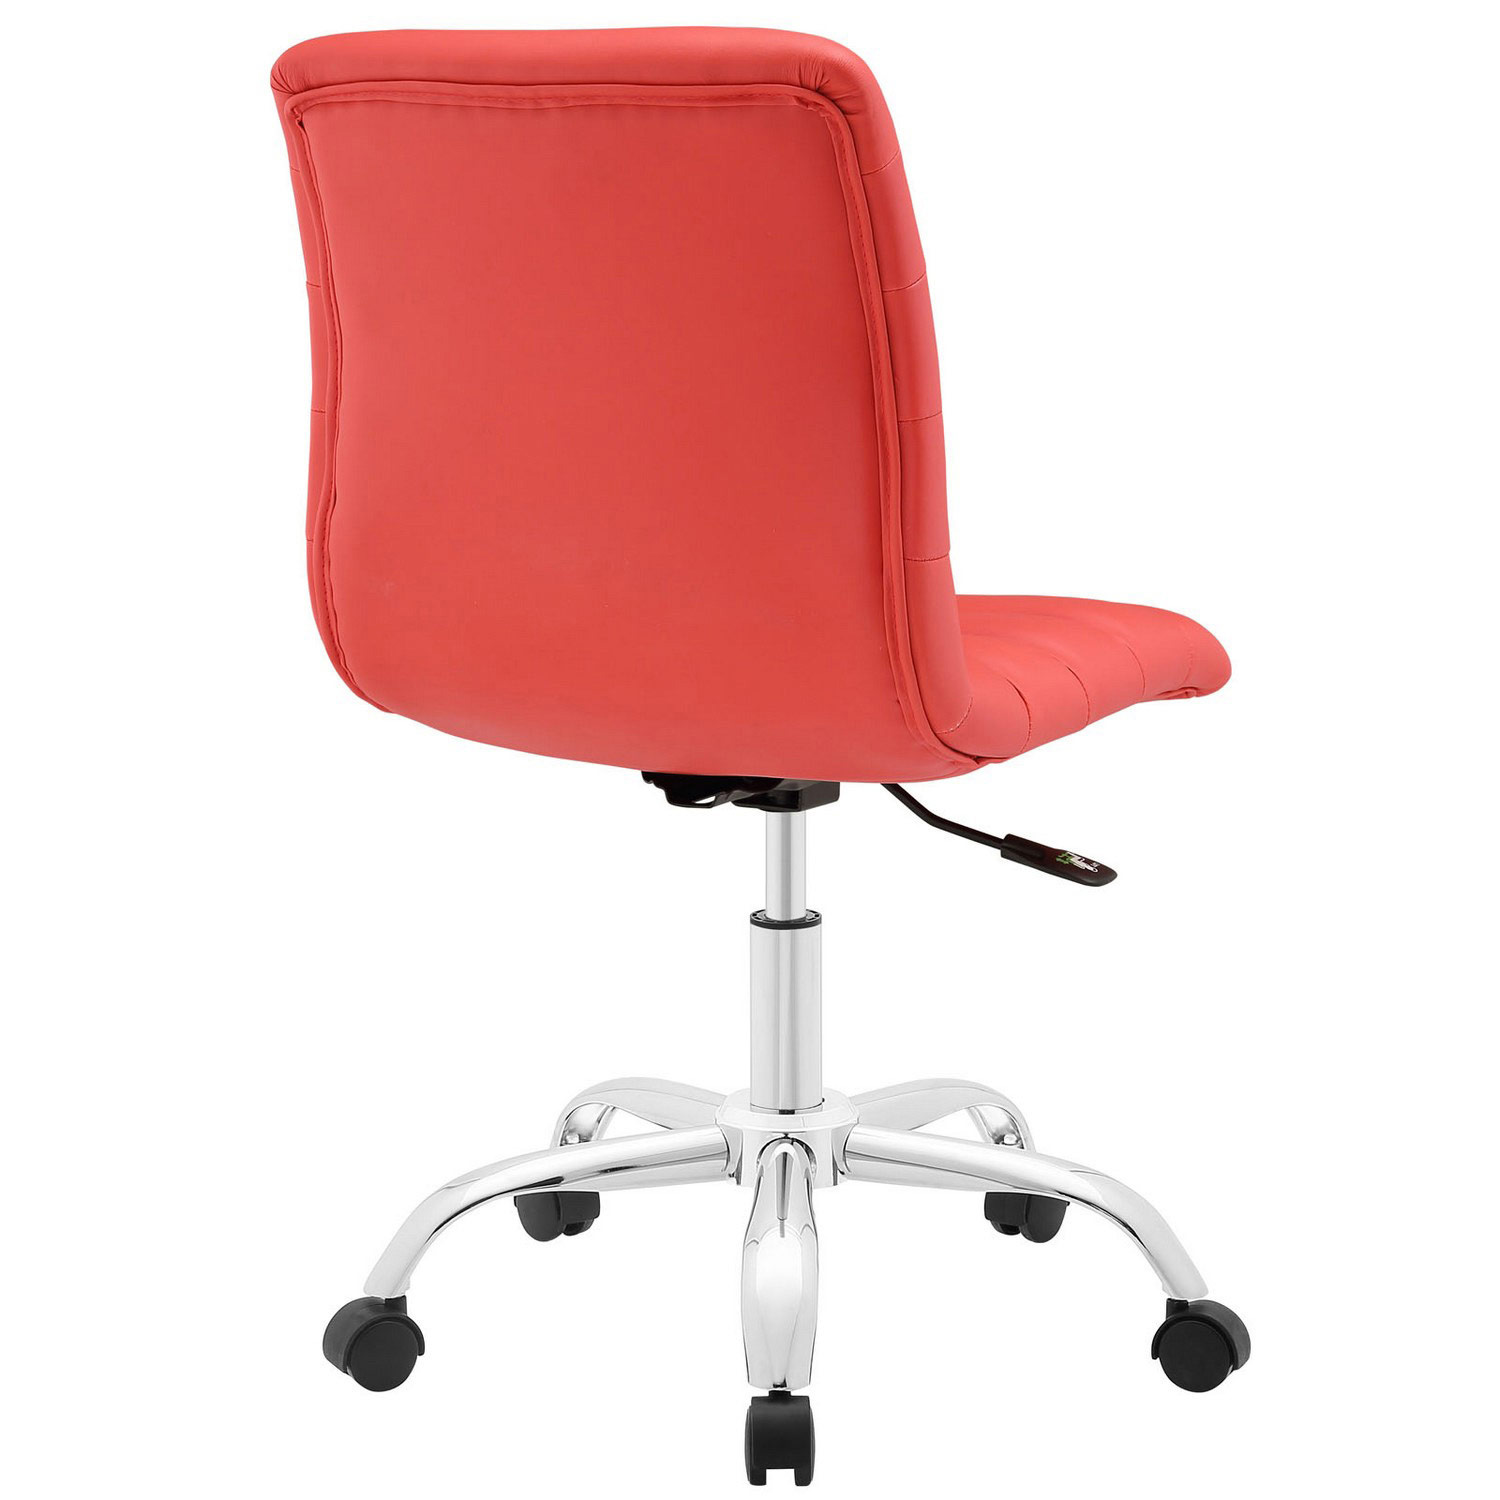 Modway Ripple Armless Mid Back Office Chair - Red